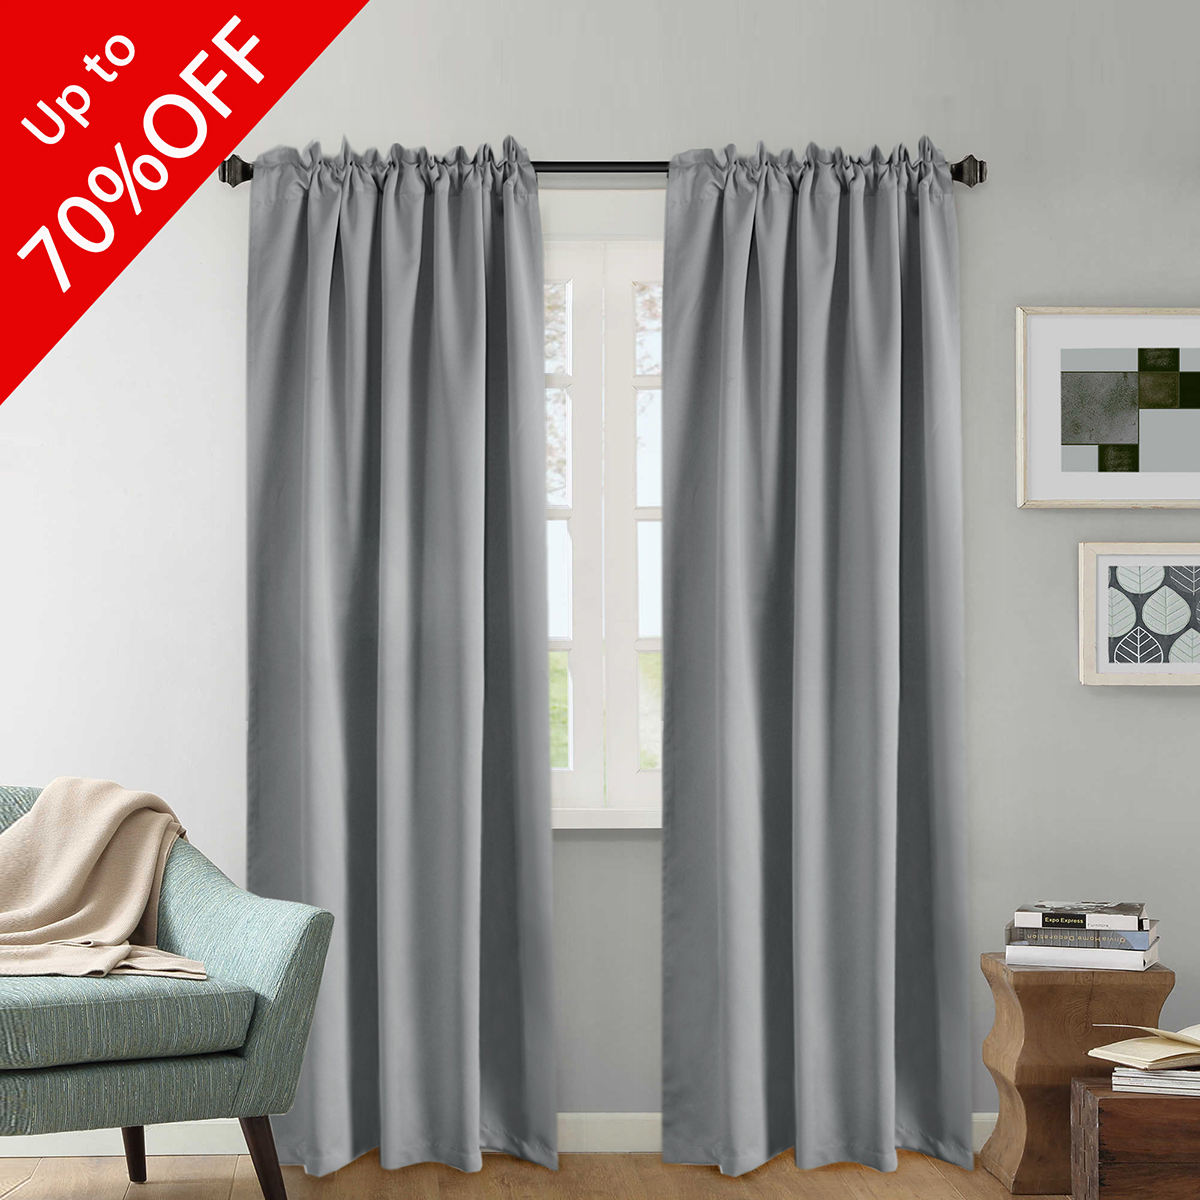 Premium Blackout Curtains 2 Panels, Thermal Insulated Back Tab / Rod Pocket Panels for Baby Girls Bedroom, Energy Saving Window Panel Drapes - 52x84 Inch - Khaki